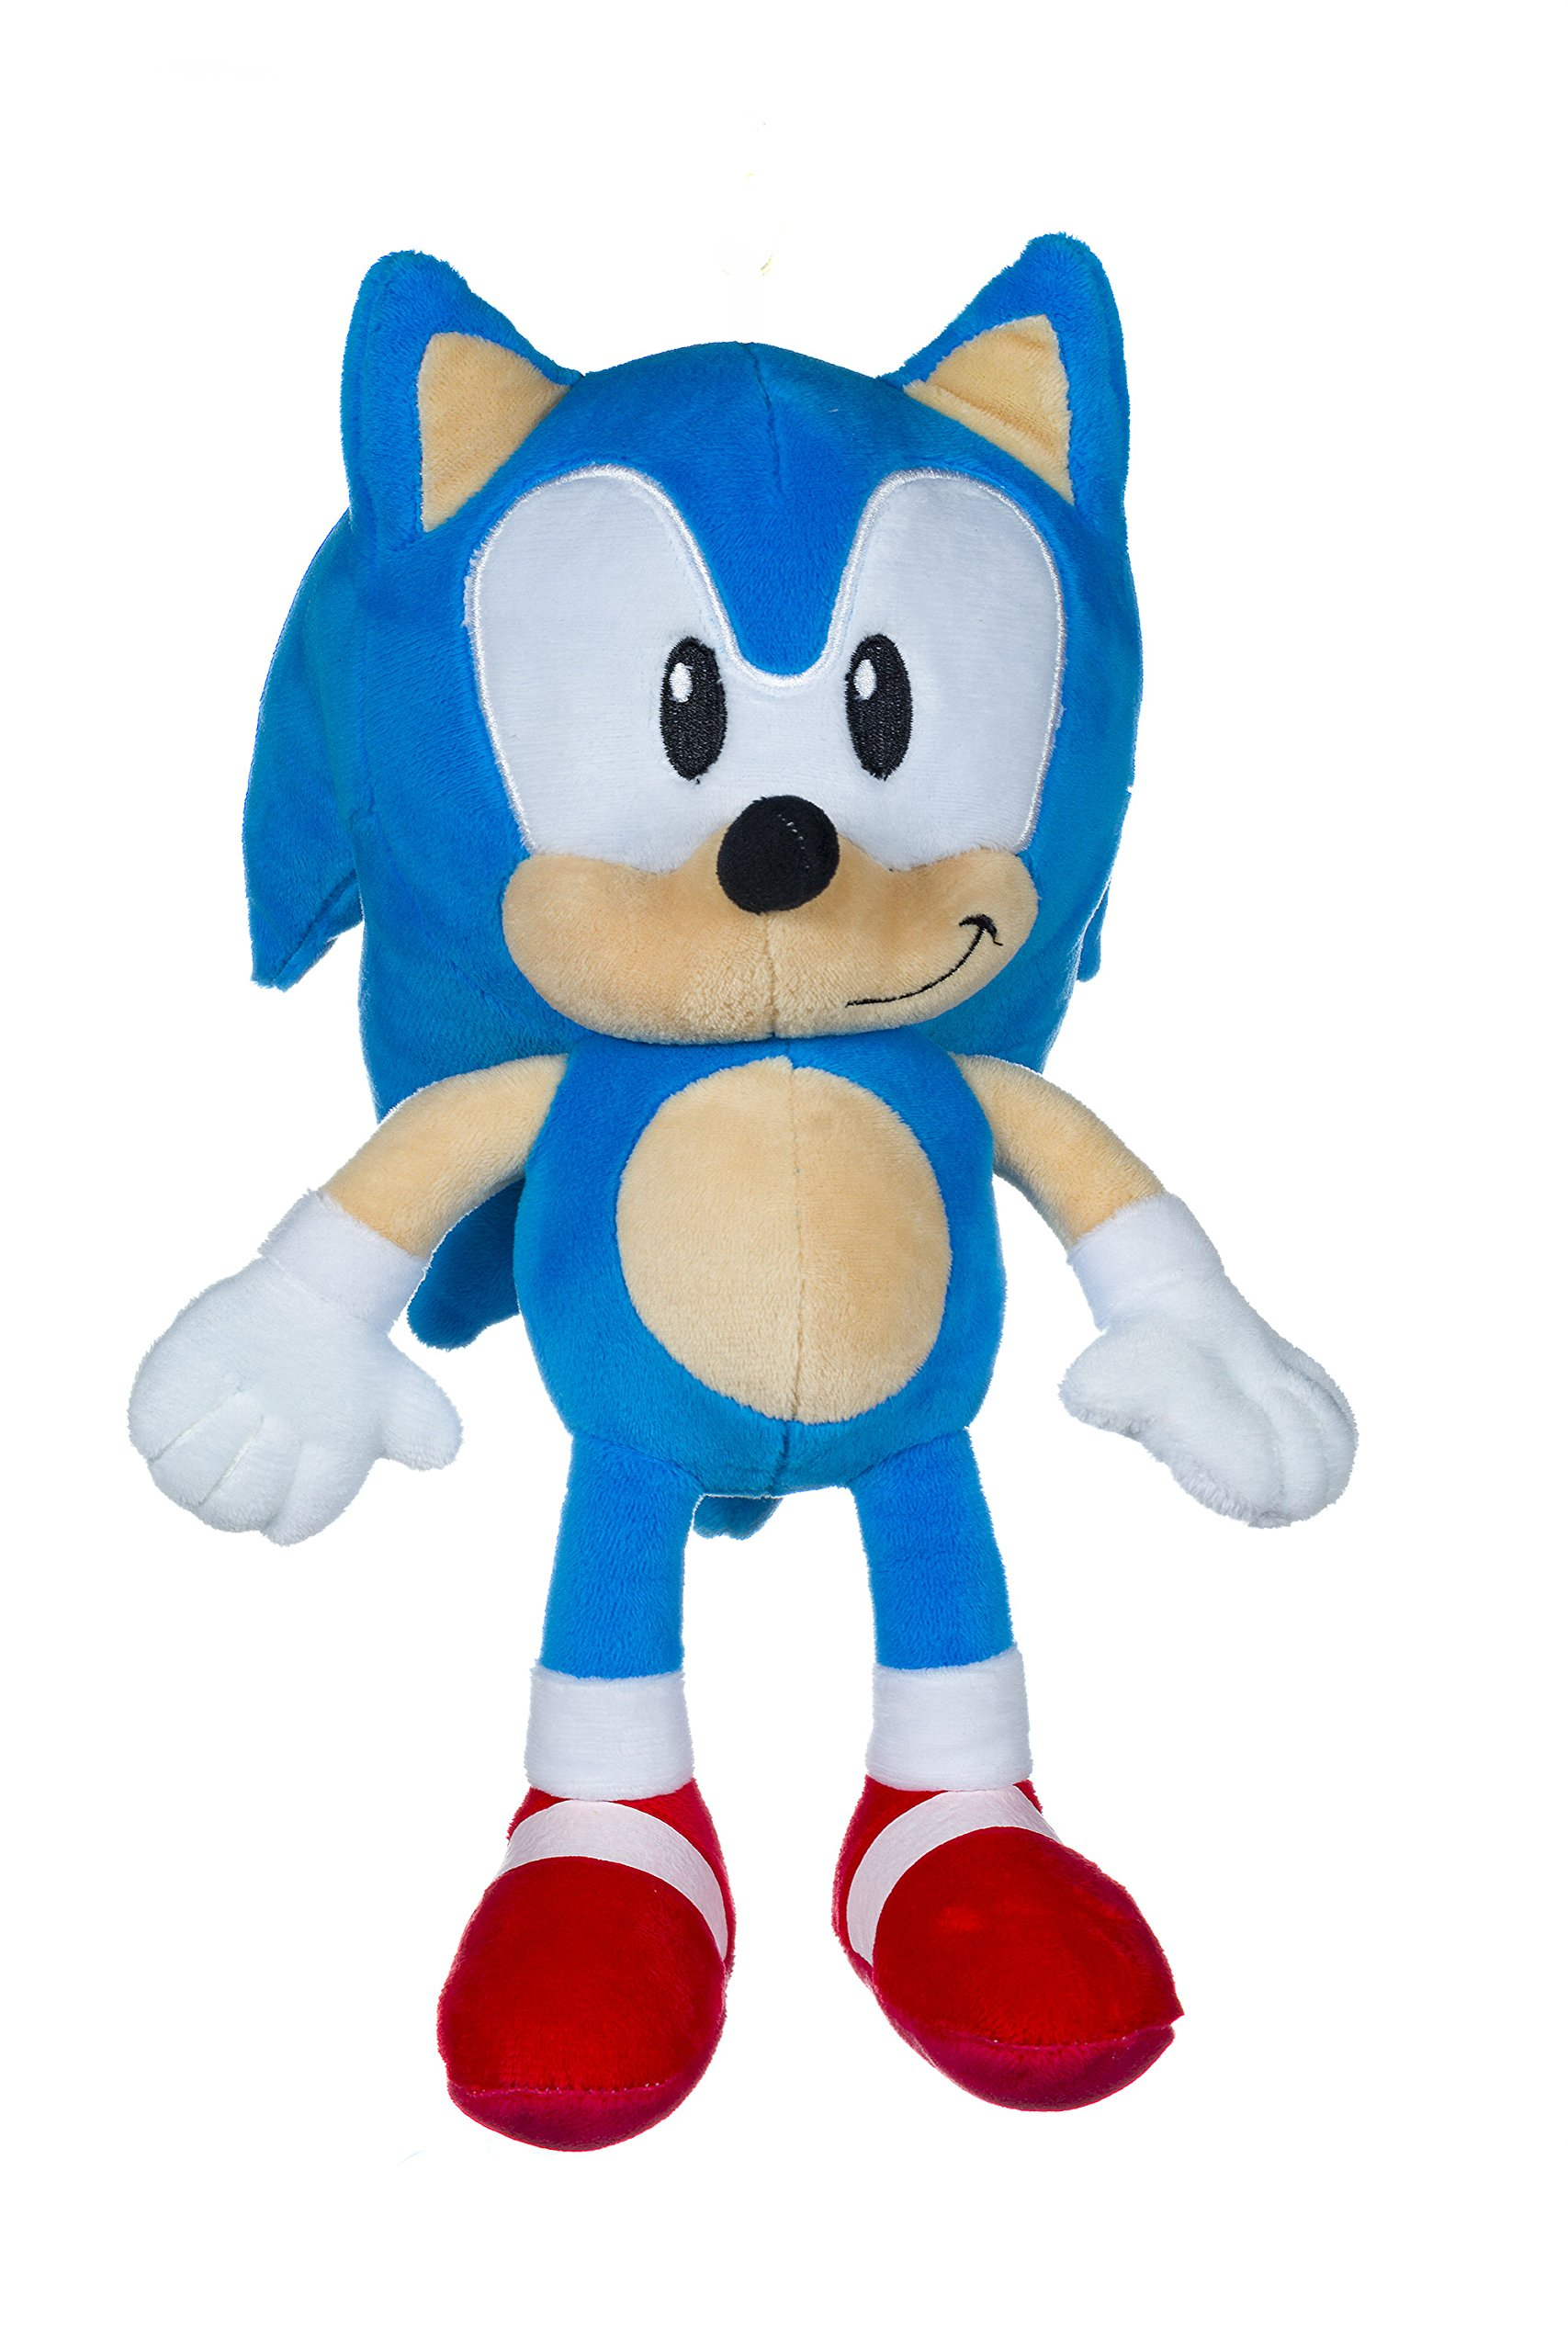 Sonic 12 New The Hedgehog Plush Toy Buy Online In Cambodia Missing Category Value Products In Cambodia See Prices Reviews And Free Delivery Over 27 000 Desertcart